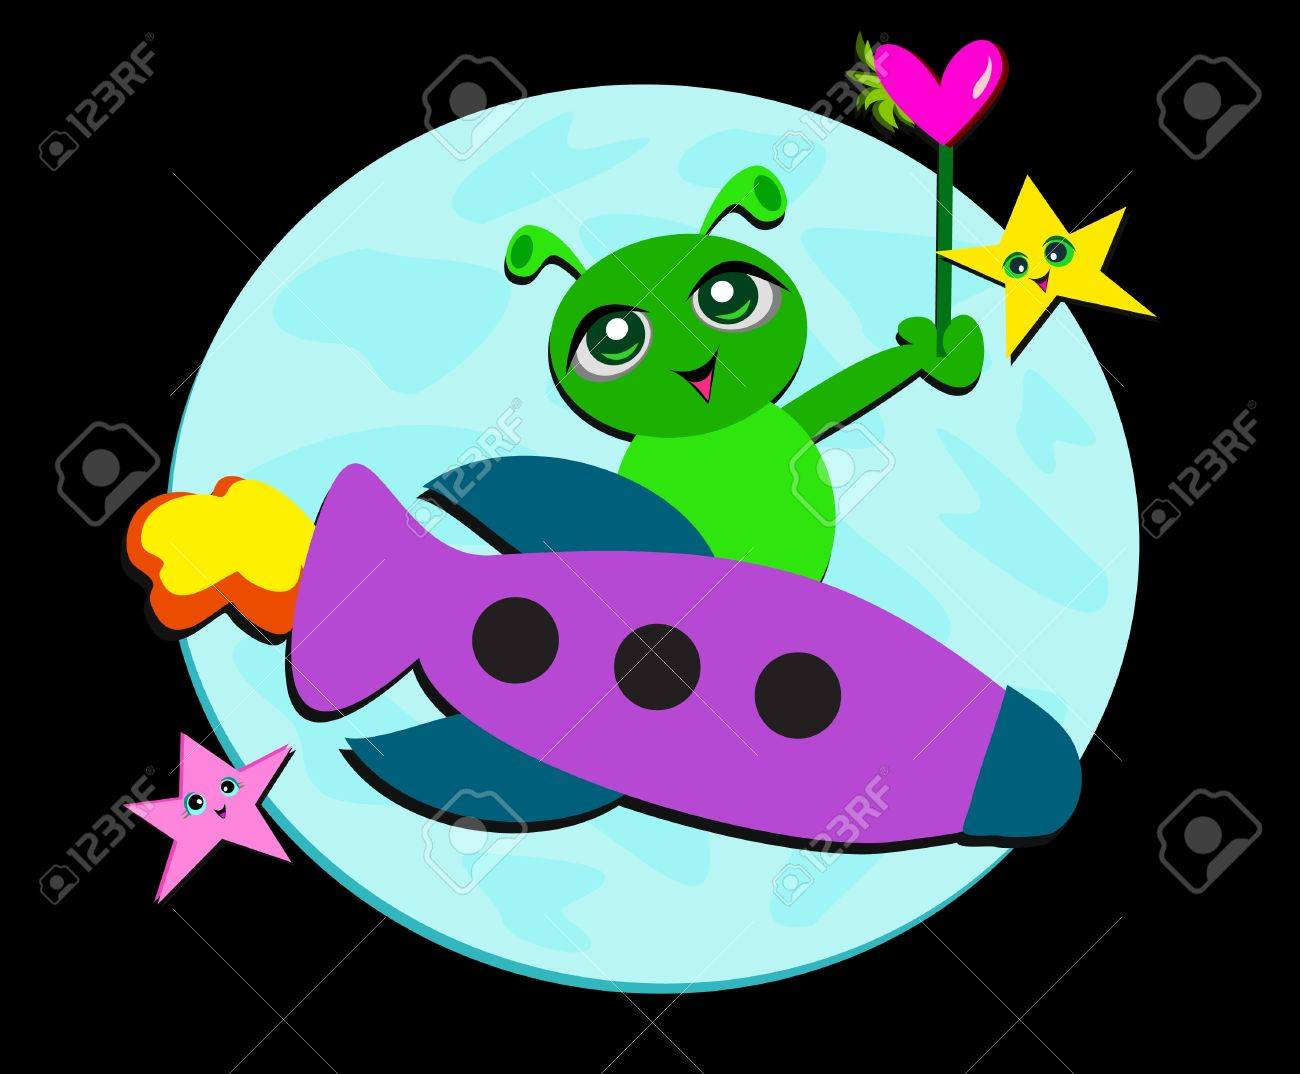 Alien on a Rocket with Stars Stock Vector - 11869202